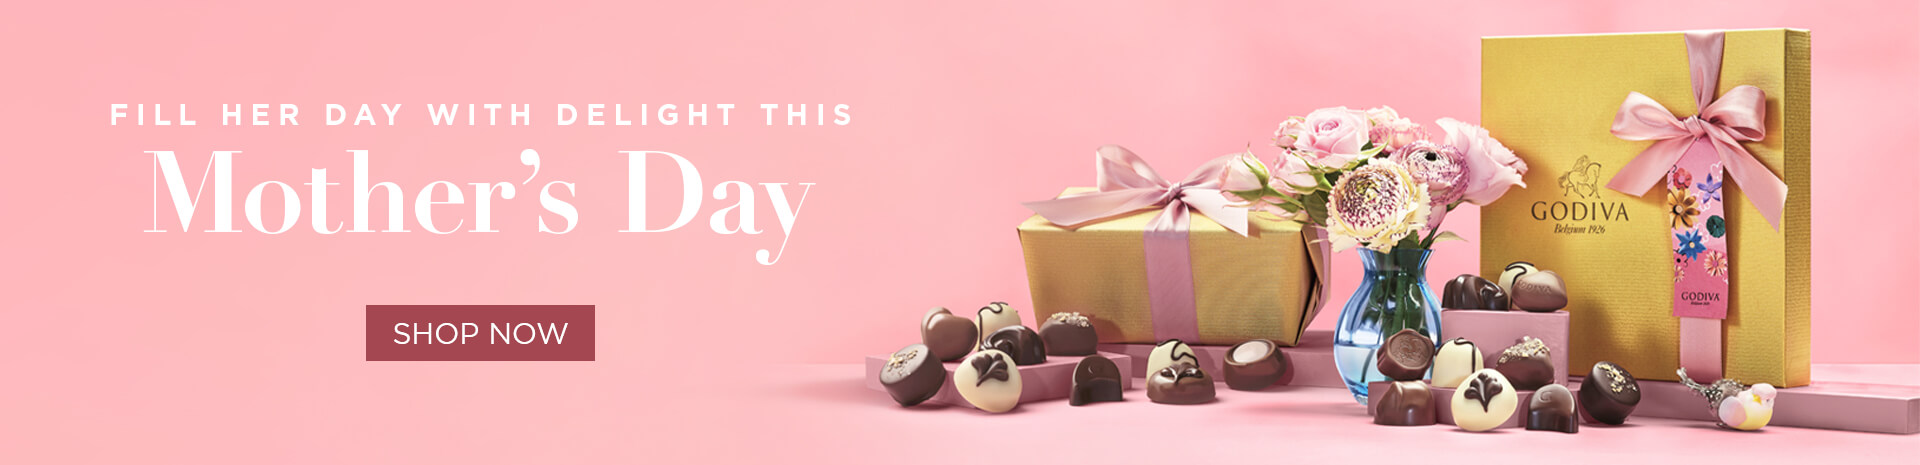 Godiva Mother's Day 2021